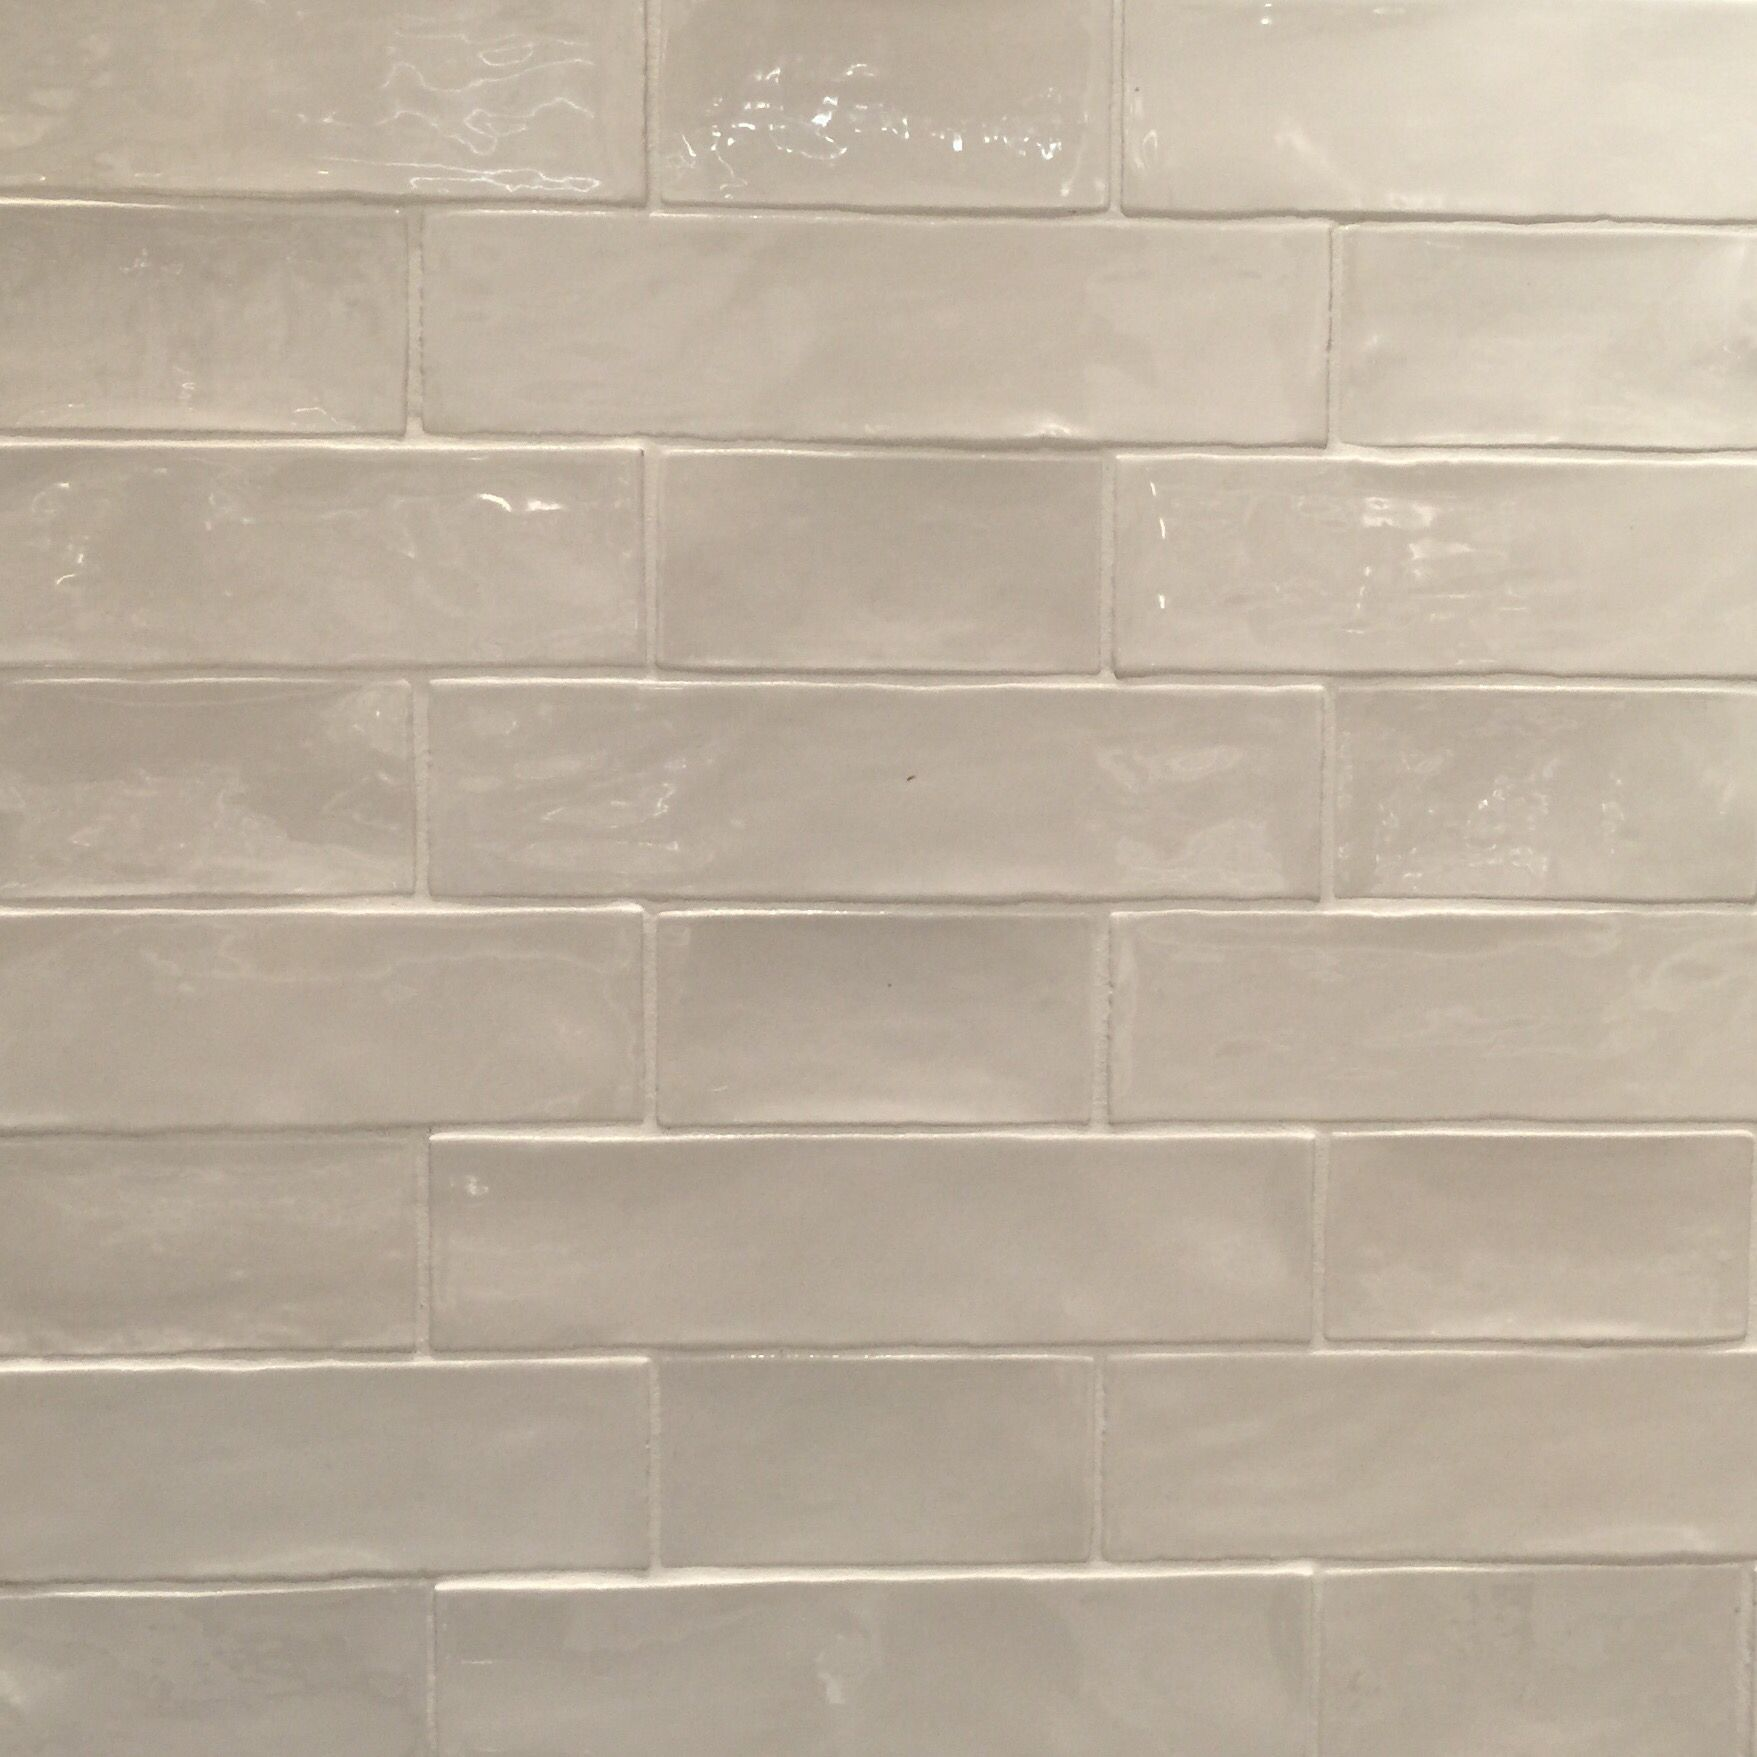 handmade look subway tile handmade subway tile in alternating 3x6 and 3x12 pattern 4657